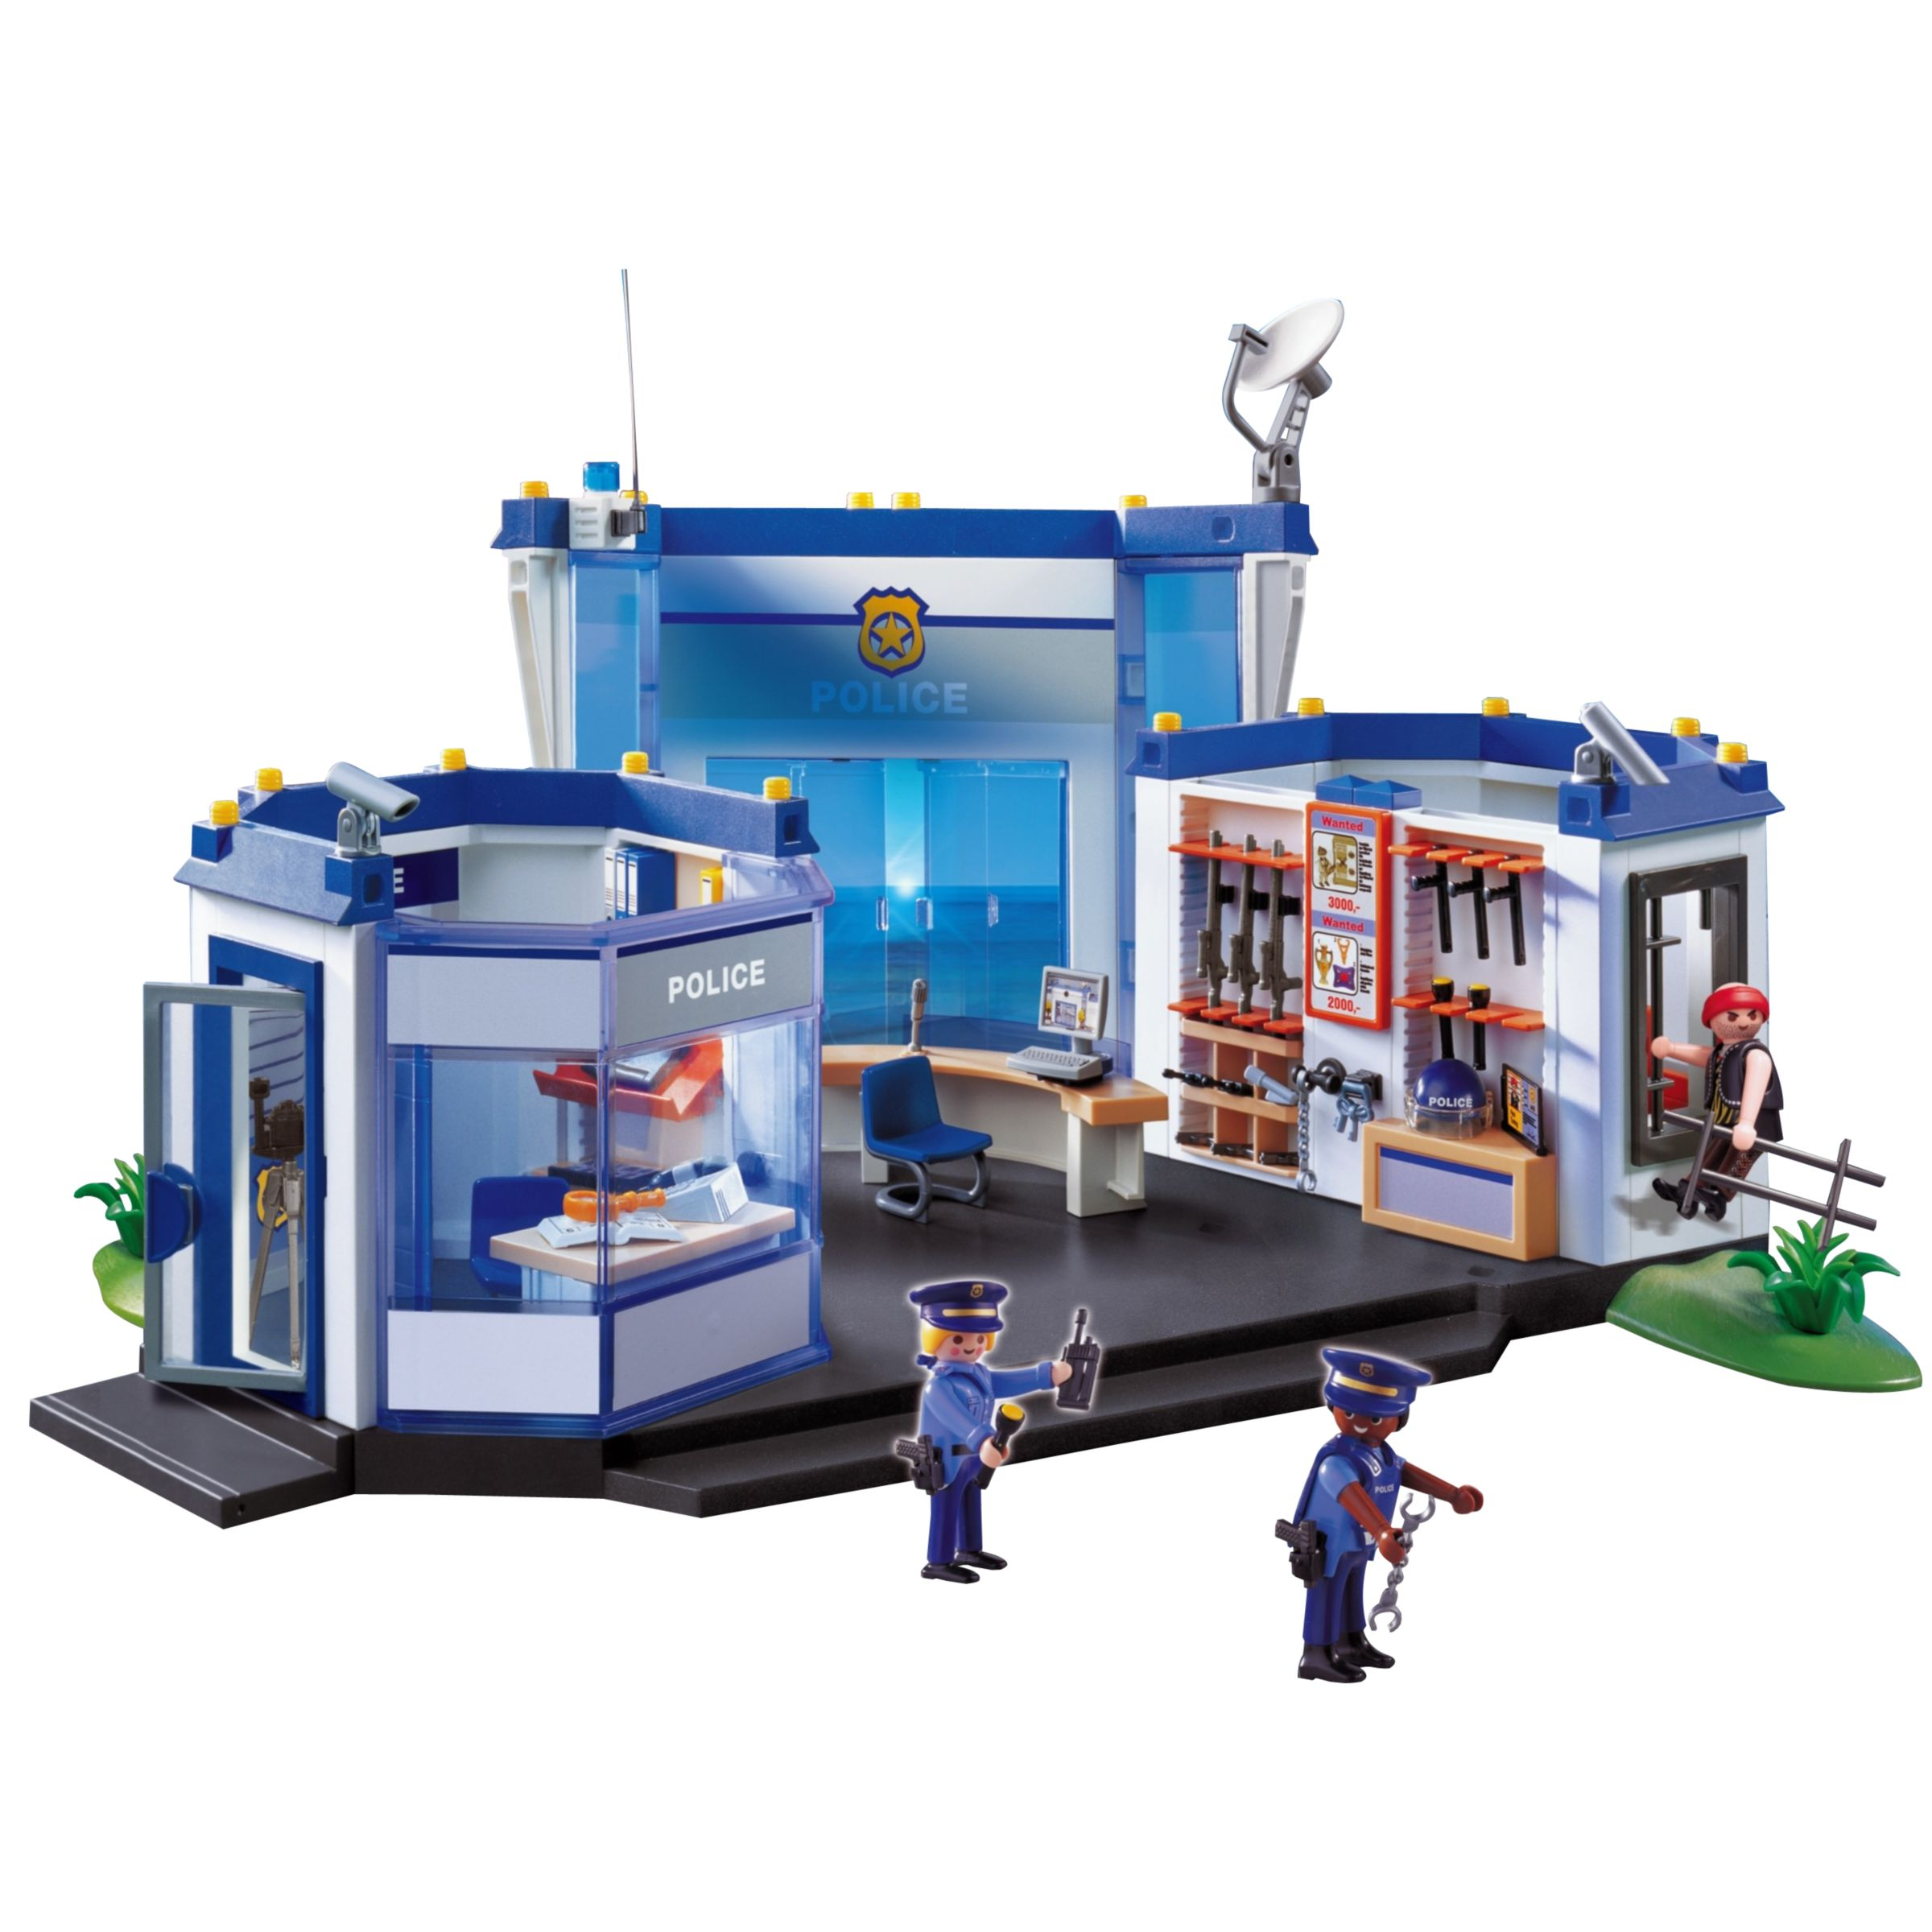 Playmobil 4263 police pompier figurine maison camion voiture train western 1 ebay - Playmobil camion police ...